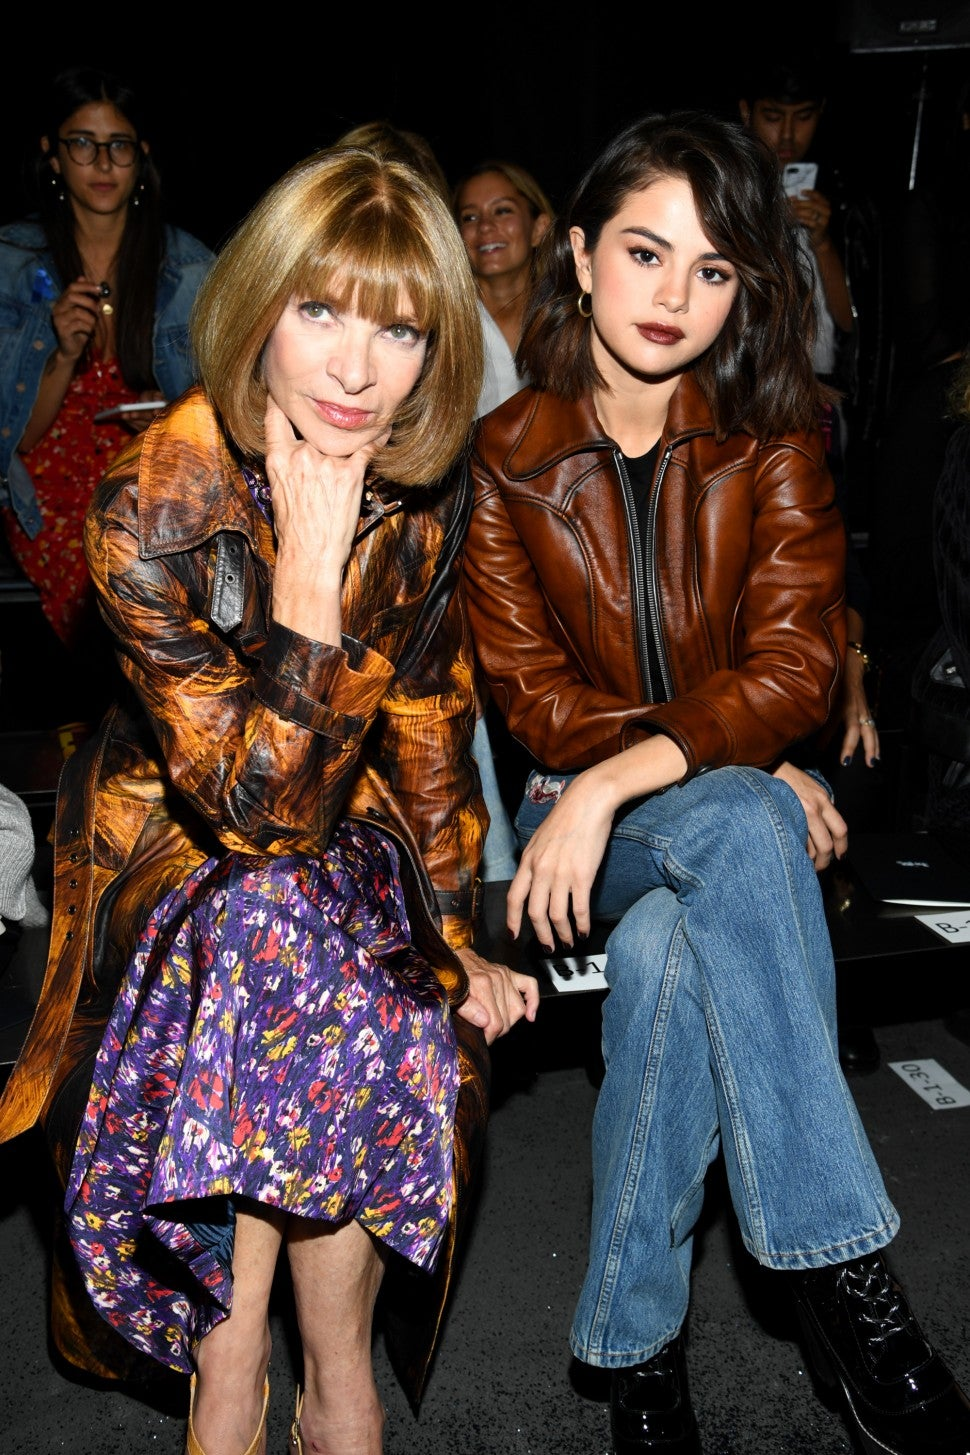 selena_gomez_anna_wintour_GettyImages-846257576